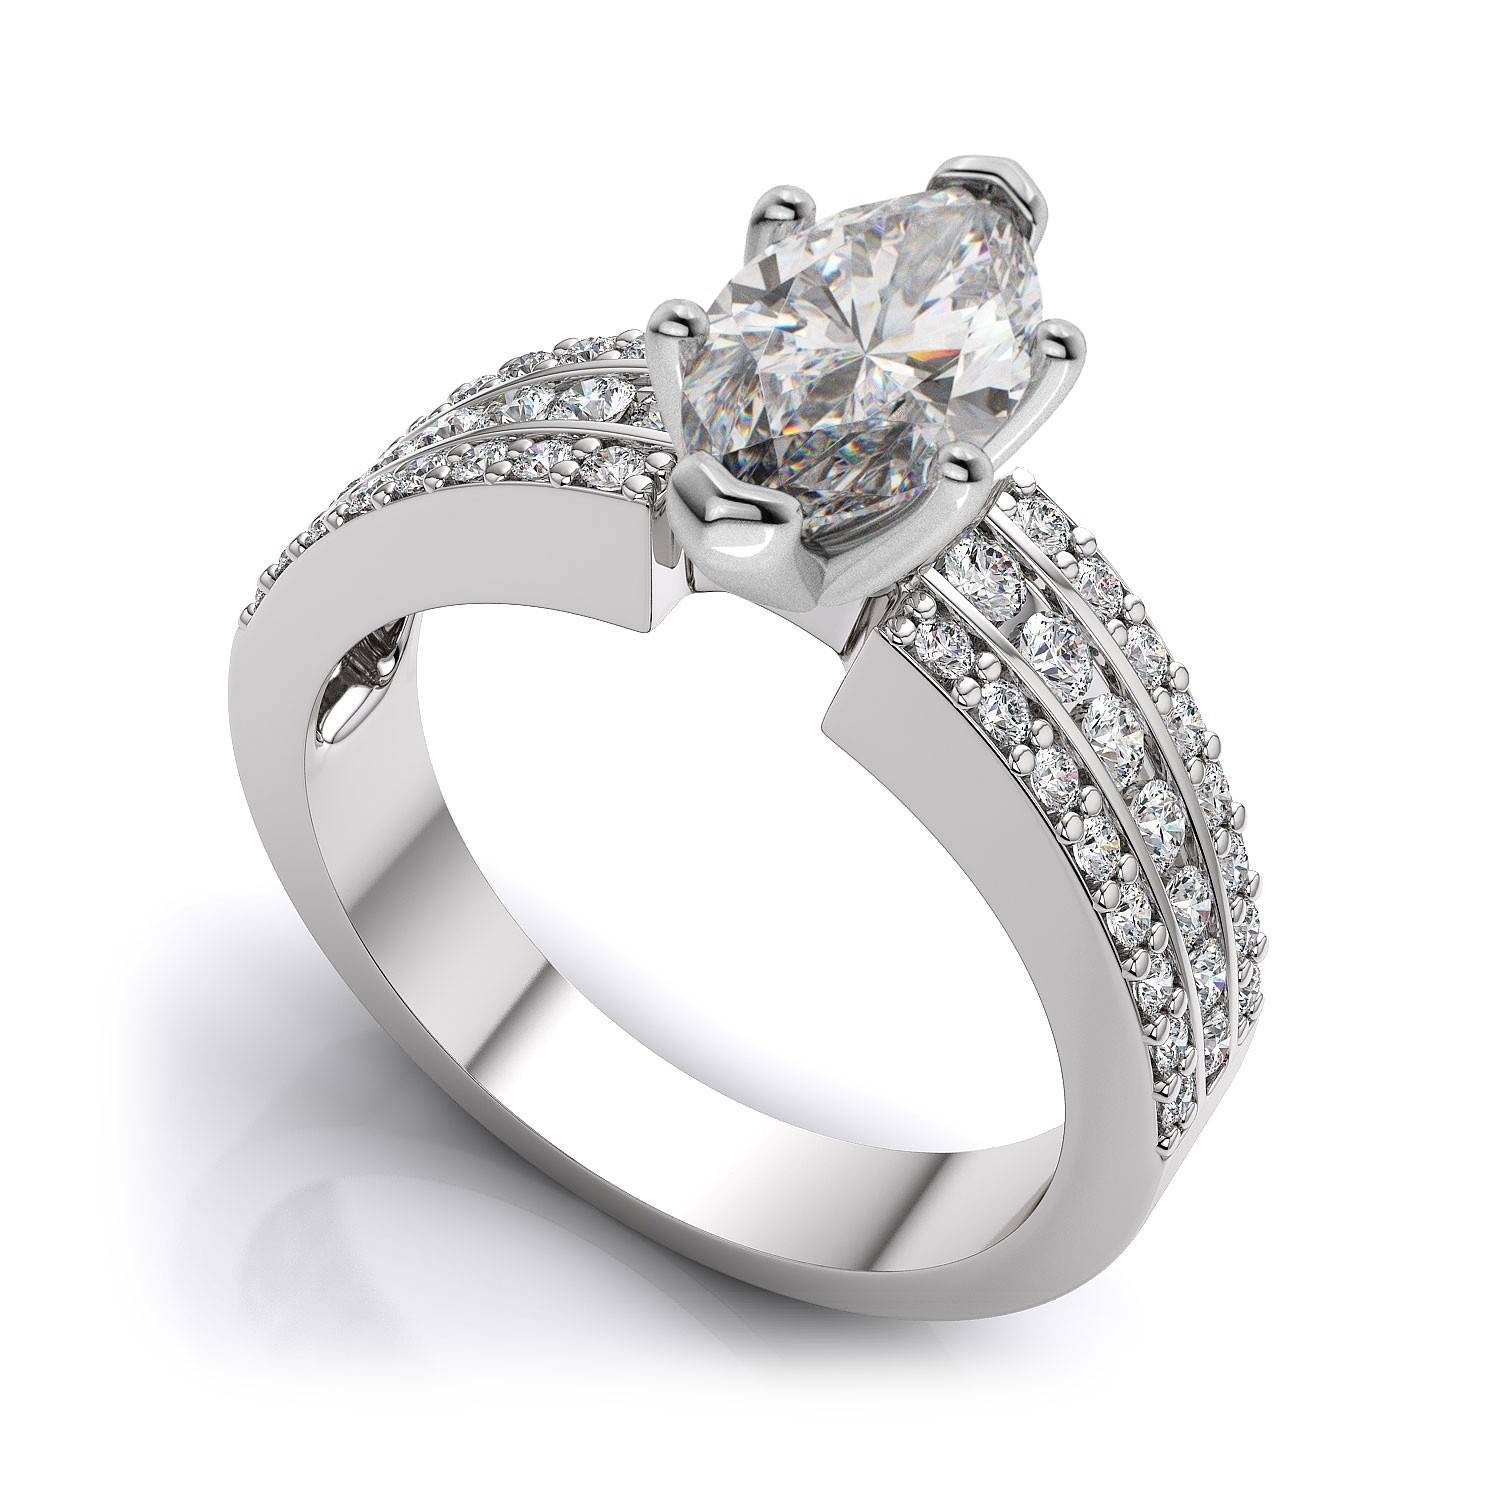 Channel Set Marquise Cut Sidestones Engagement Ring Setting In 14k Inside Marquise Cut Diamond Wedding Rings Sets (View 8 of 15)